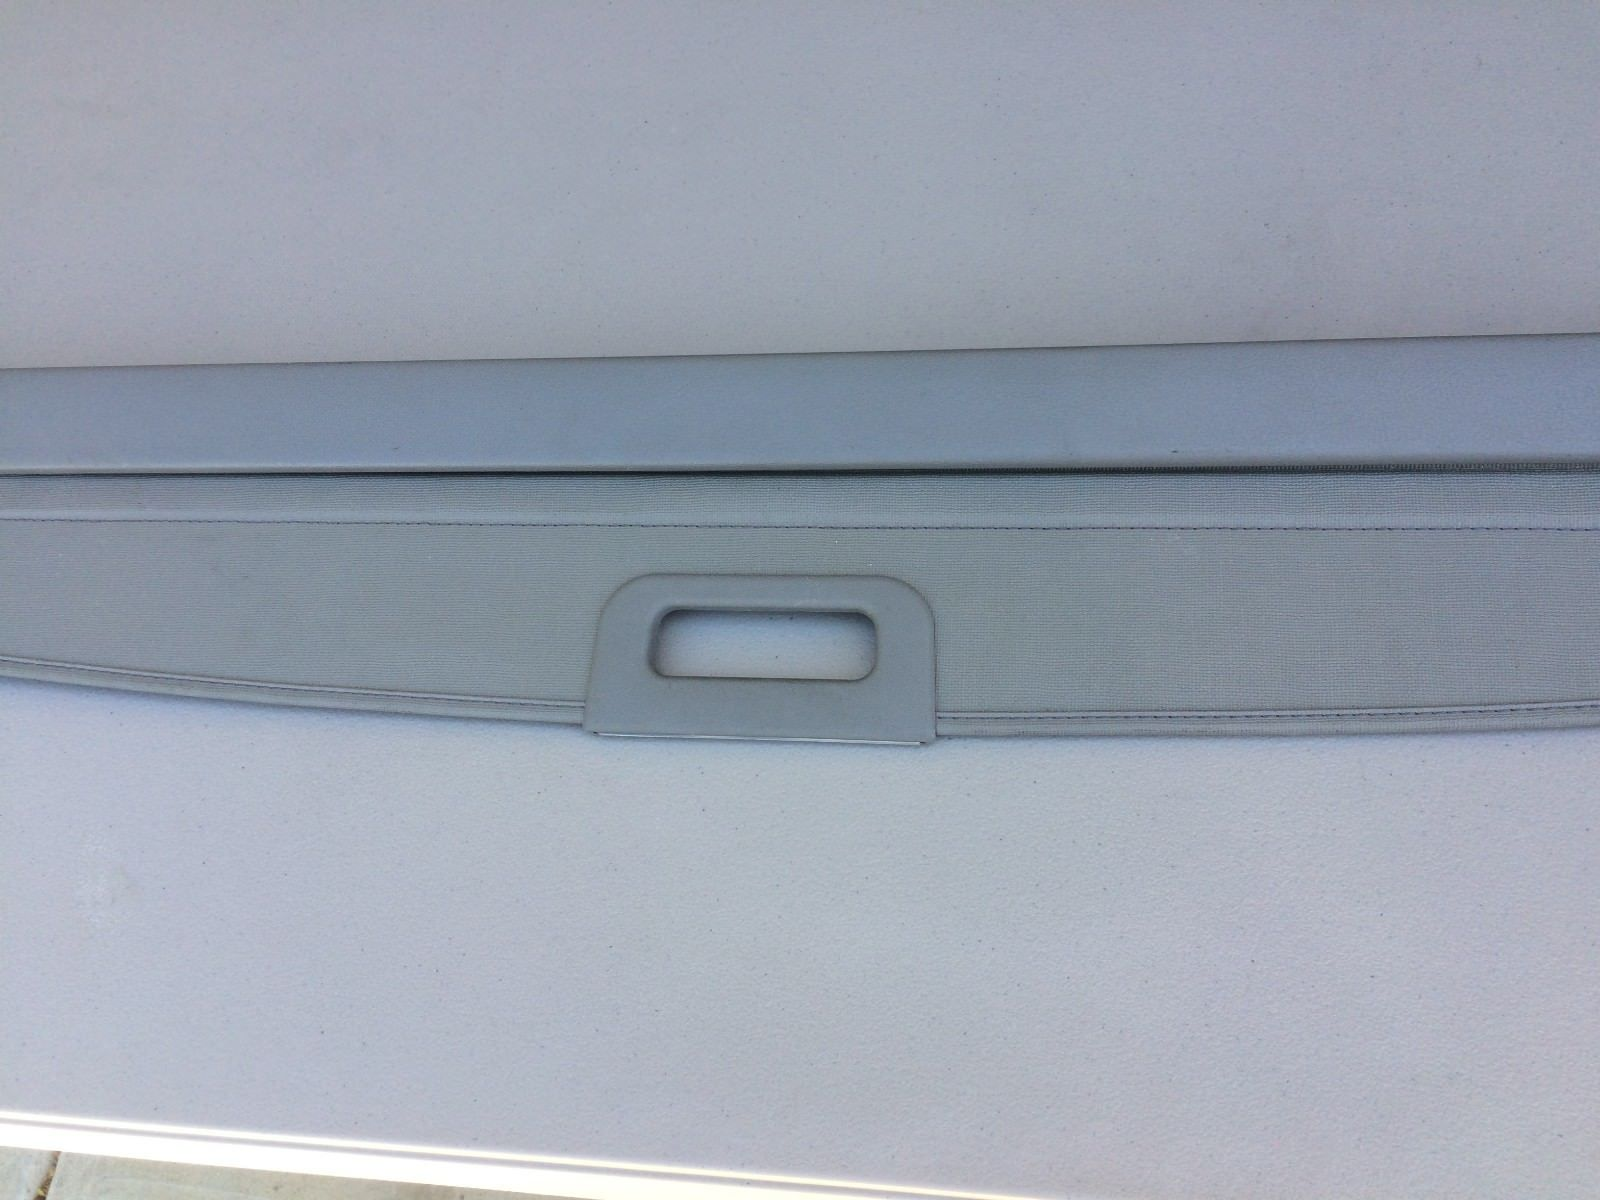 1998-2002 Subaru Forester Rear Retractable Cargo Cover Privacy Shade GREY Does not apply